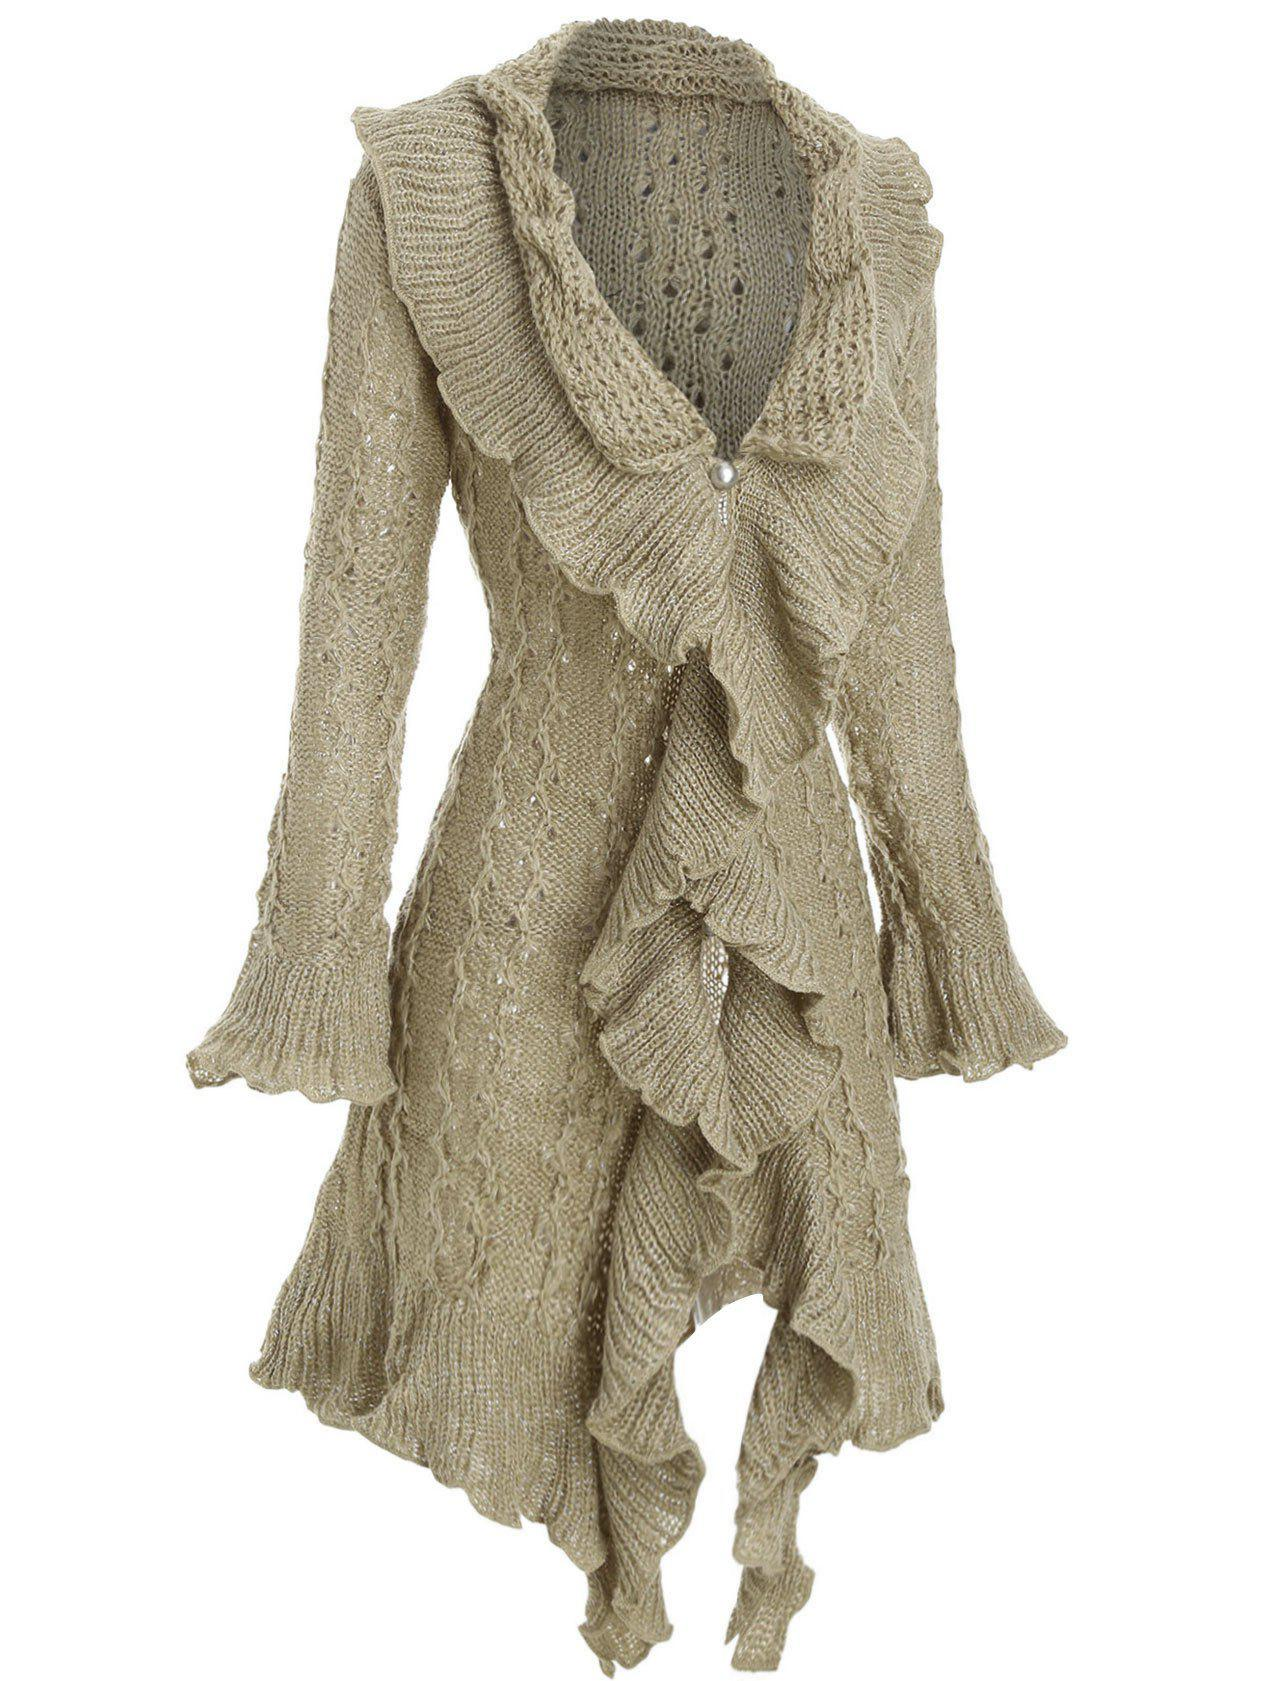 Chic Metallic Thread Flounce Ruffle Cuff Tunic Cardigan